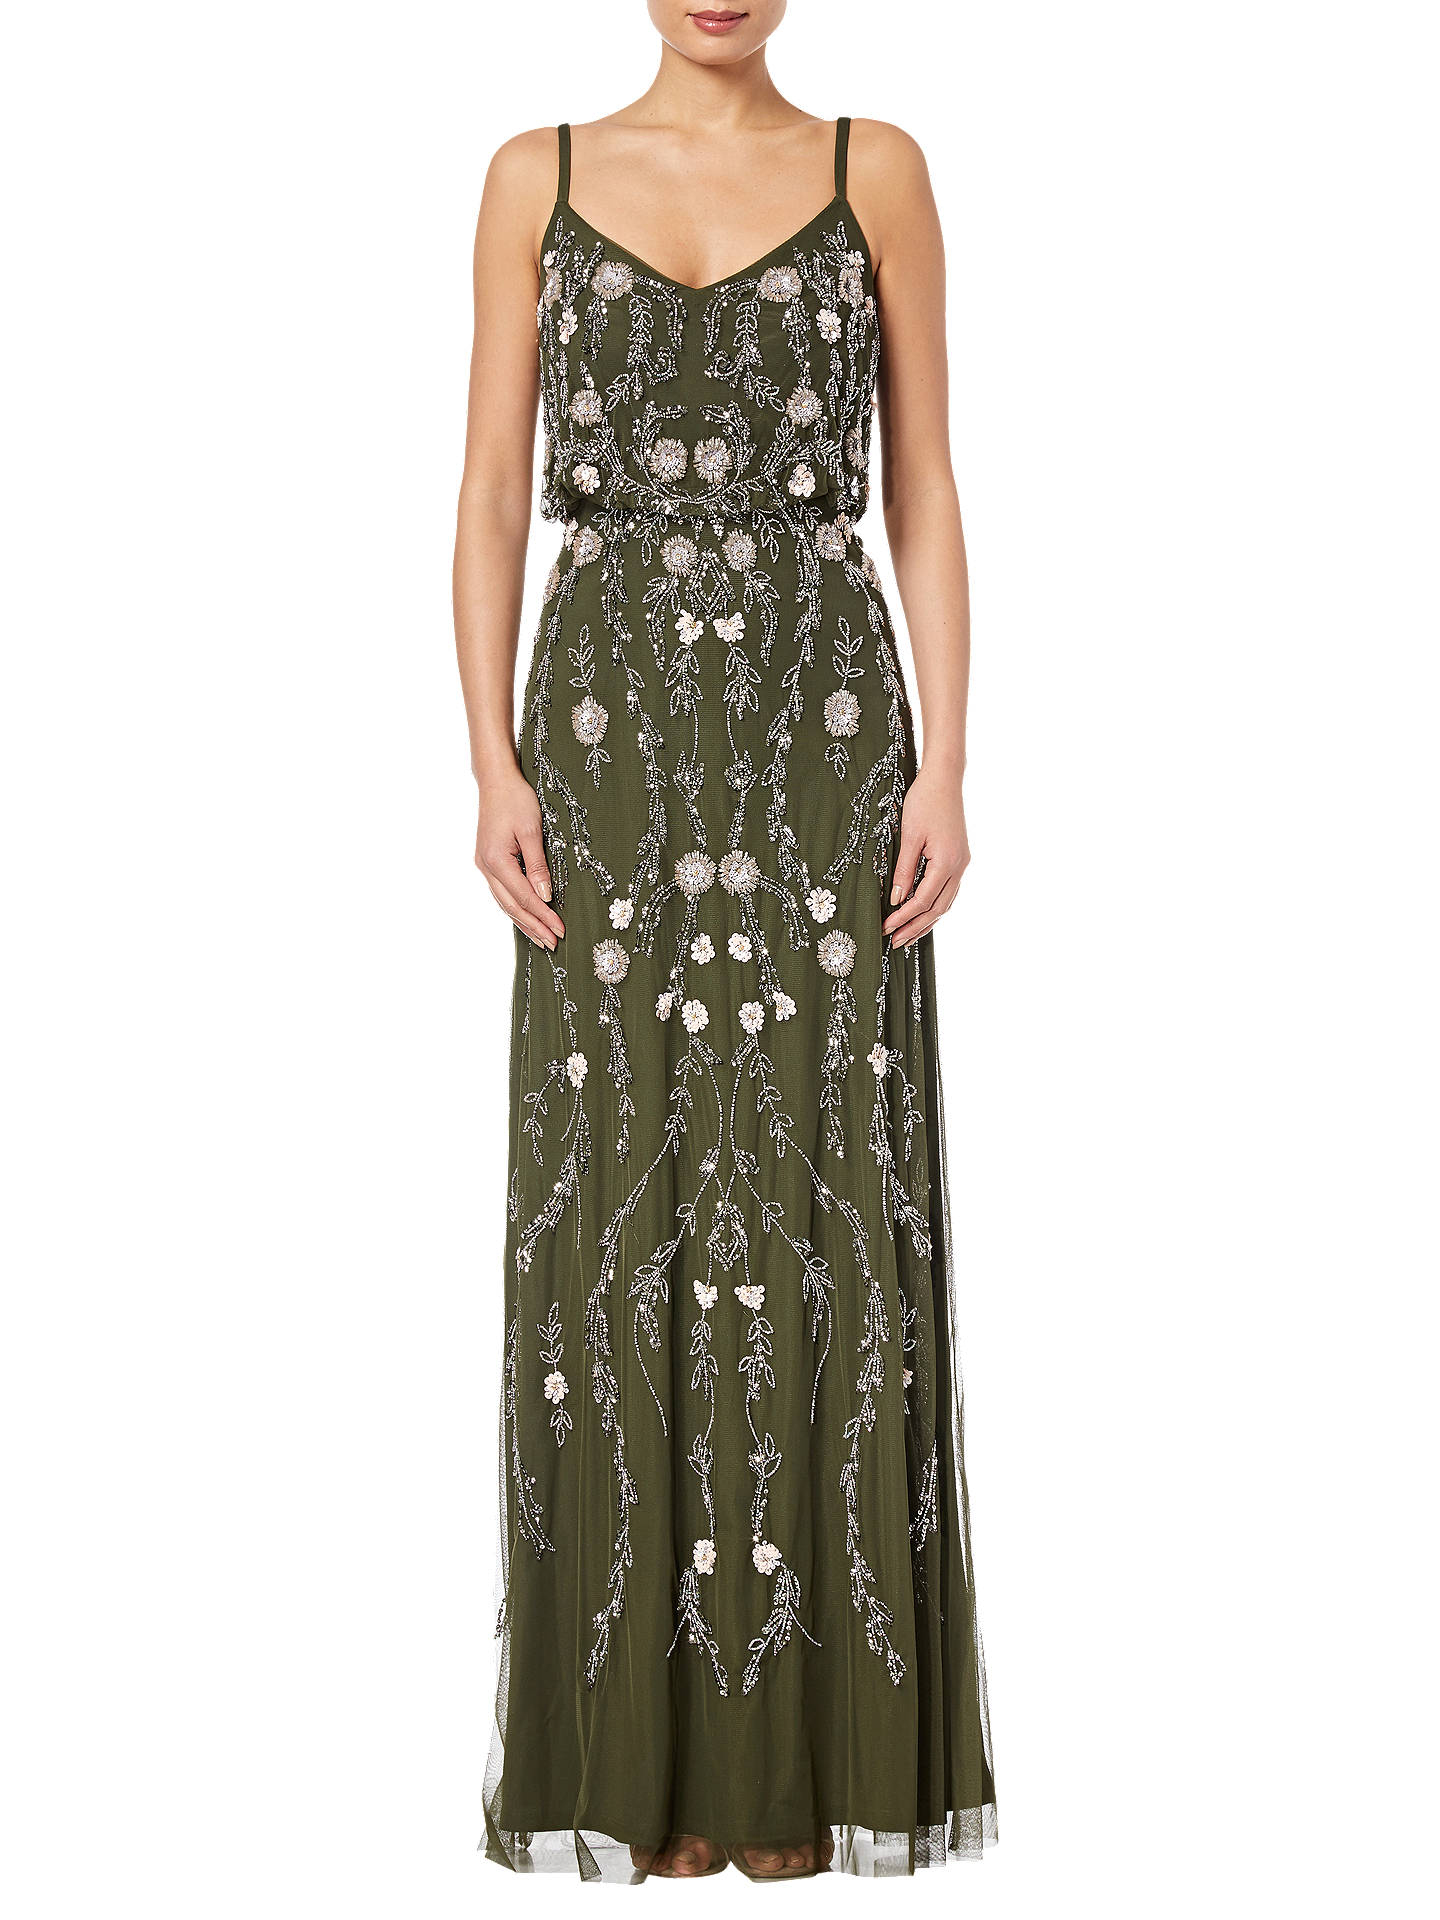 c77039bd6fc2 Buy Adrianna Papell Petite Floral Beaded Blouson Gown, Olive/Multi, 6  Online at ...